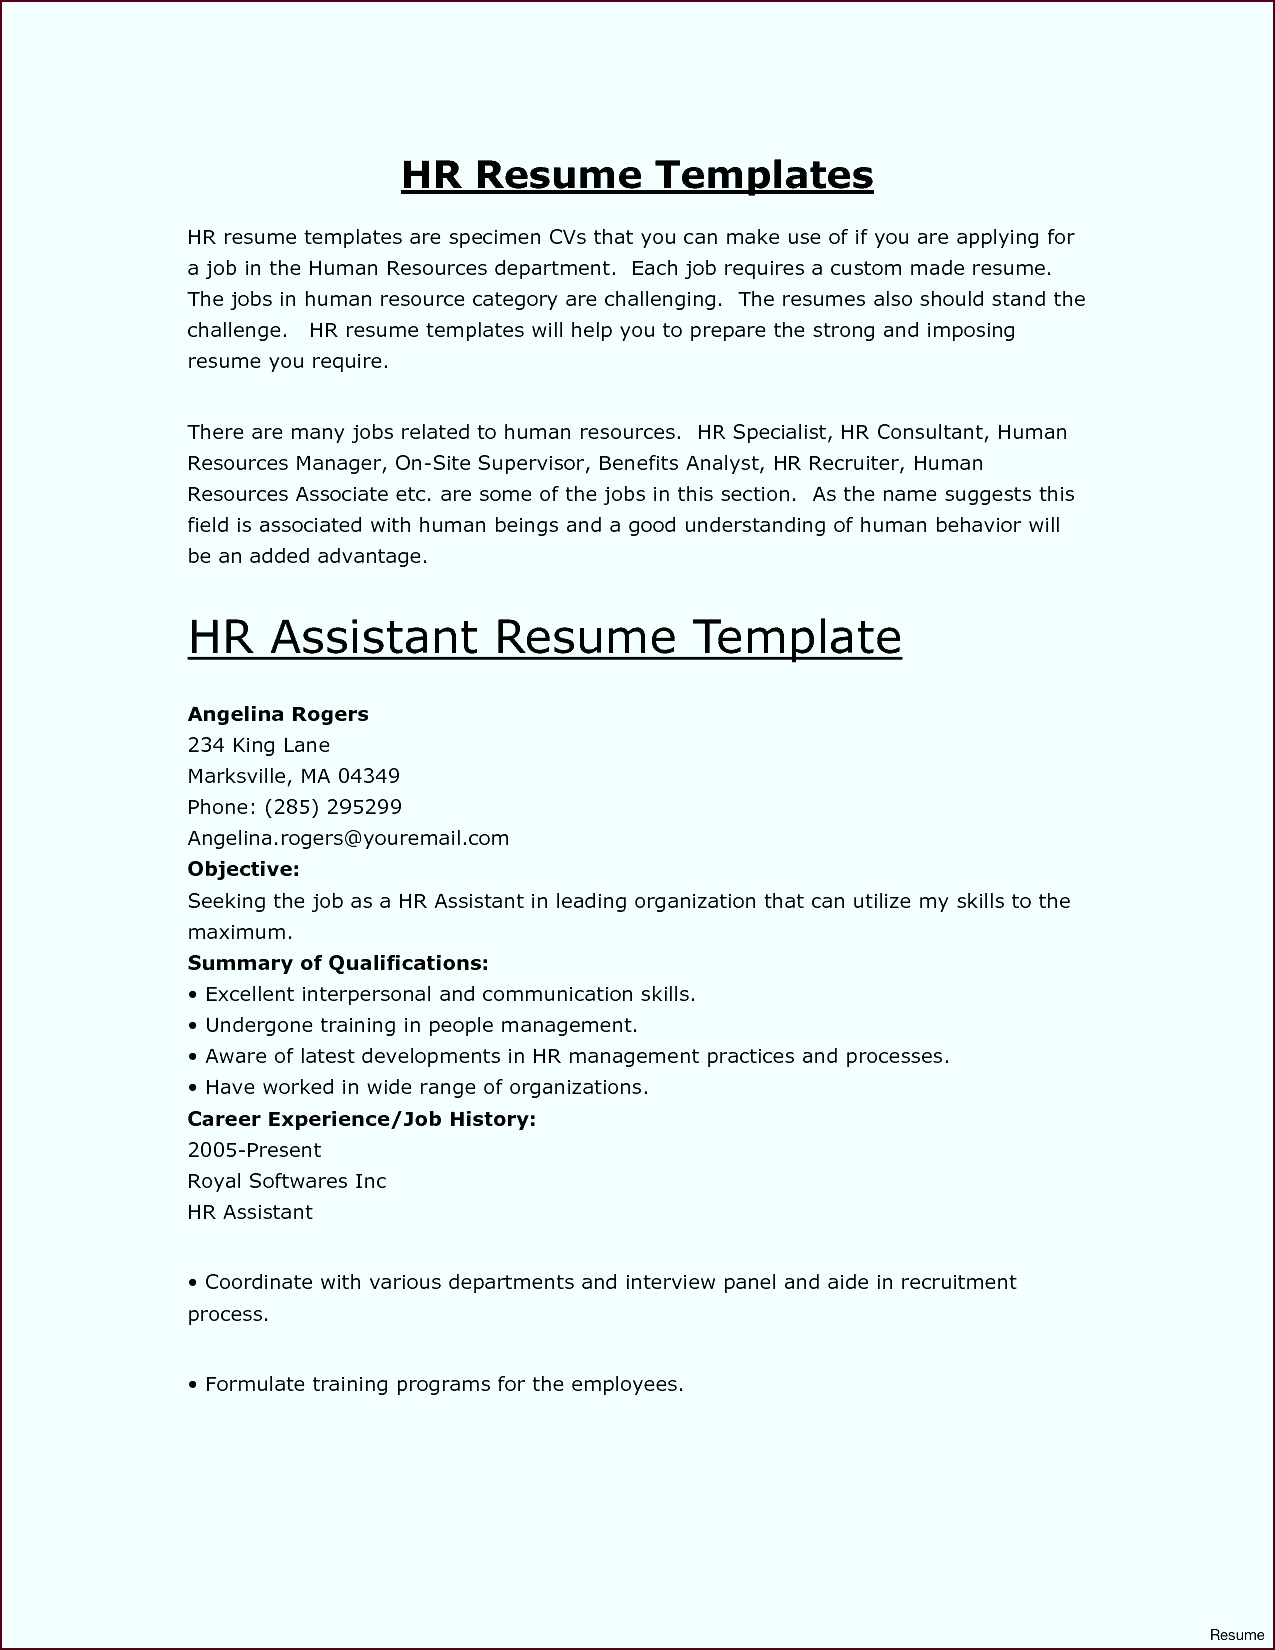 Letter Of Resignation Template Word 2007 - 10 Template for Resignation Letter Template Update234